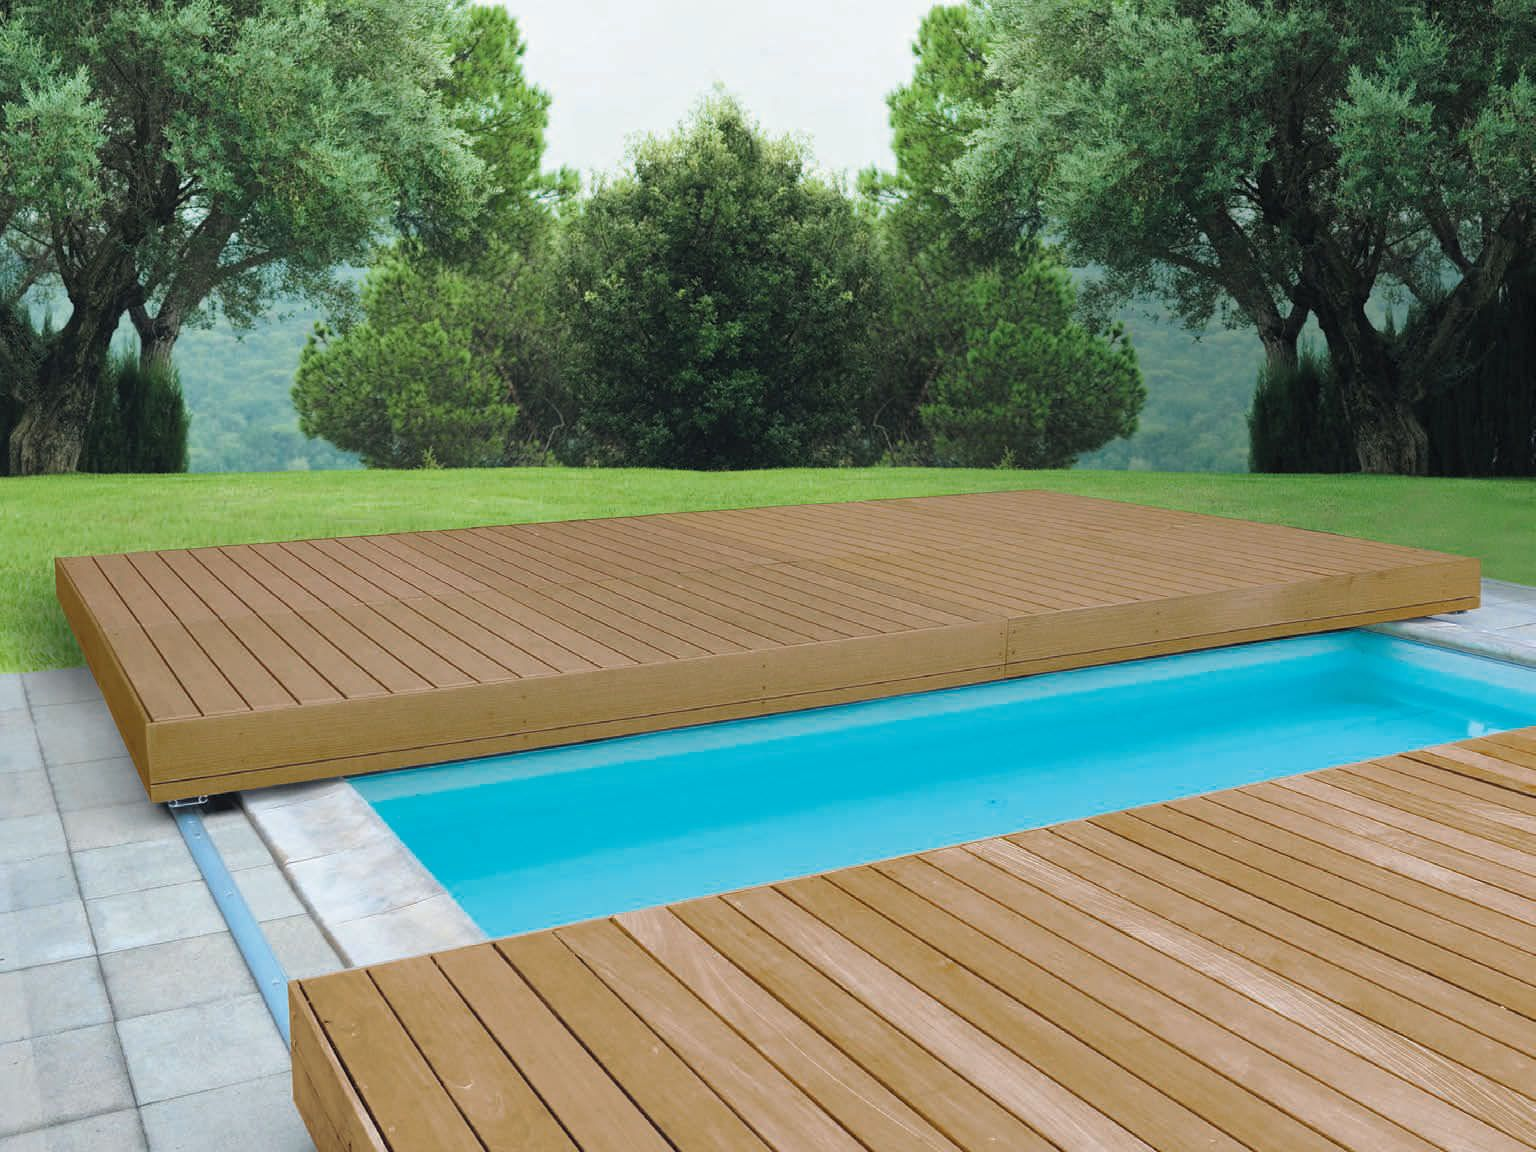 Security sliding deck pool cover walter piscine pool for Club piscine above ground pools prices